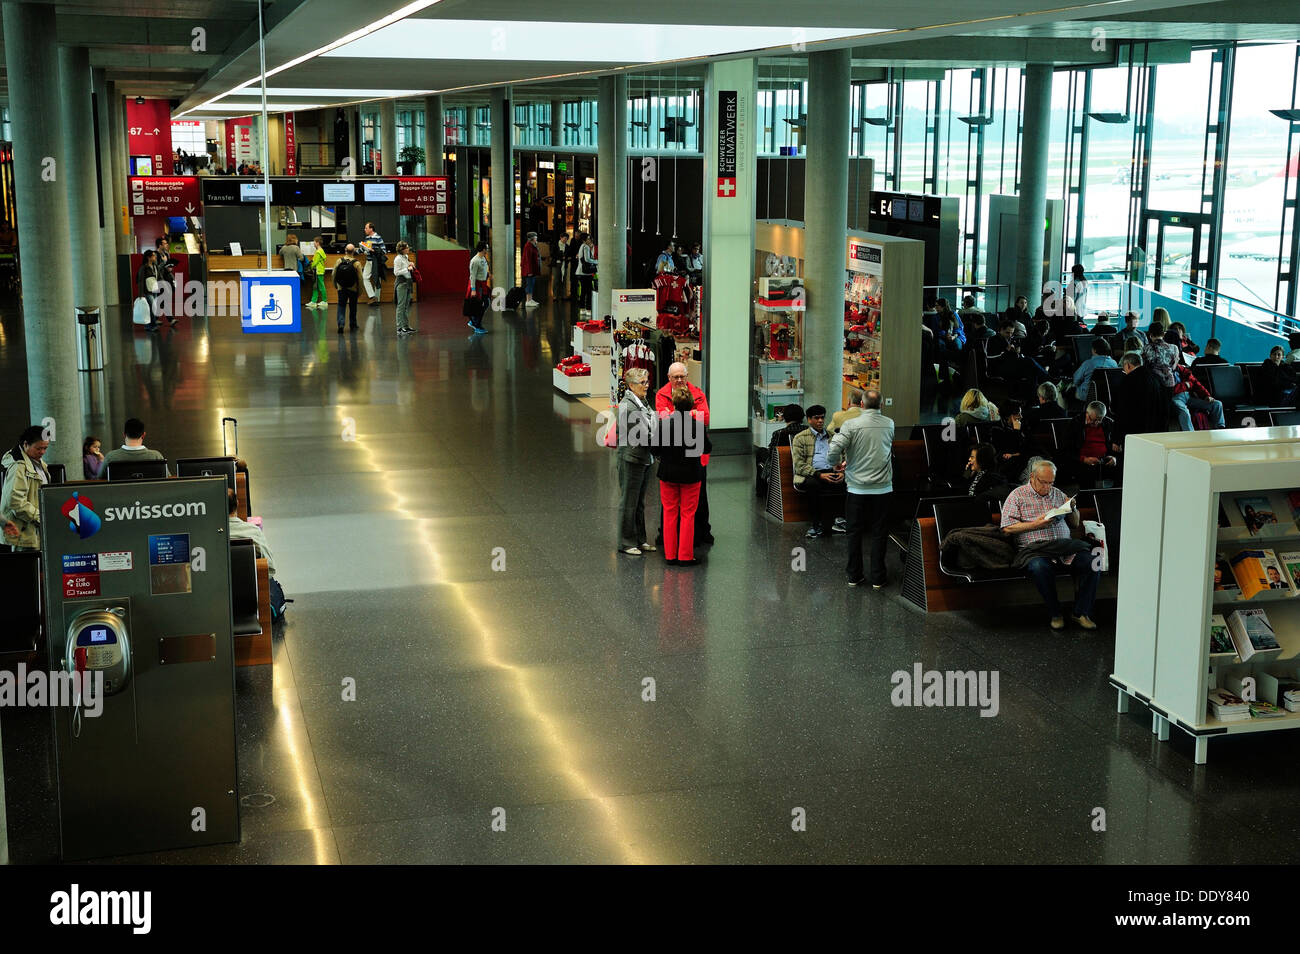 Departure hall of the E Gates at Zurich Airport - Stock Image